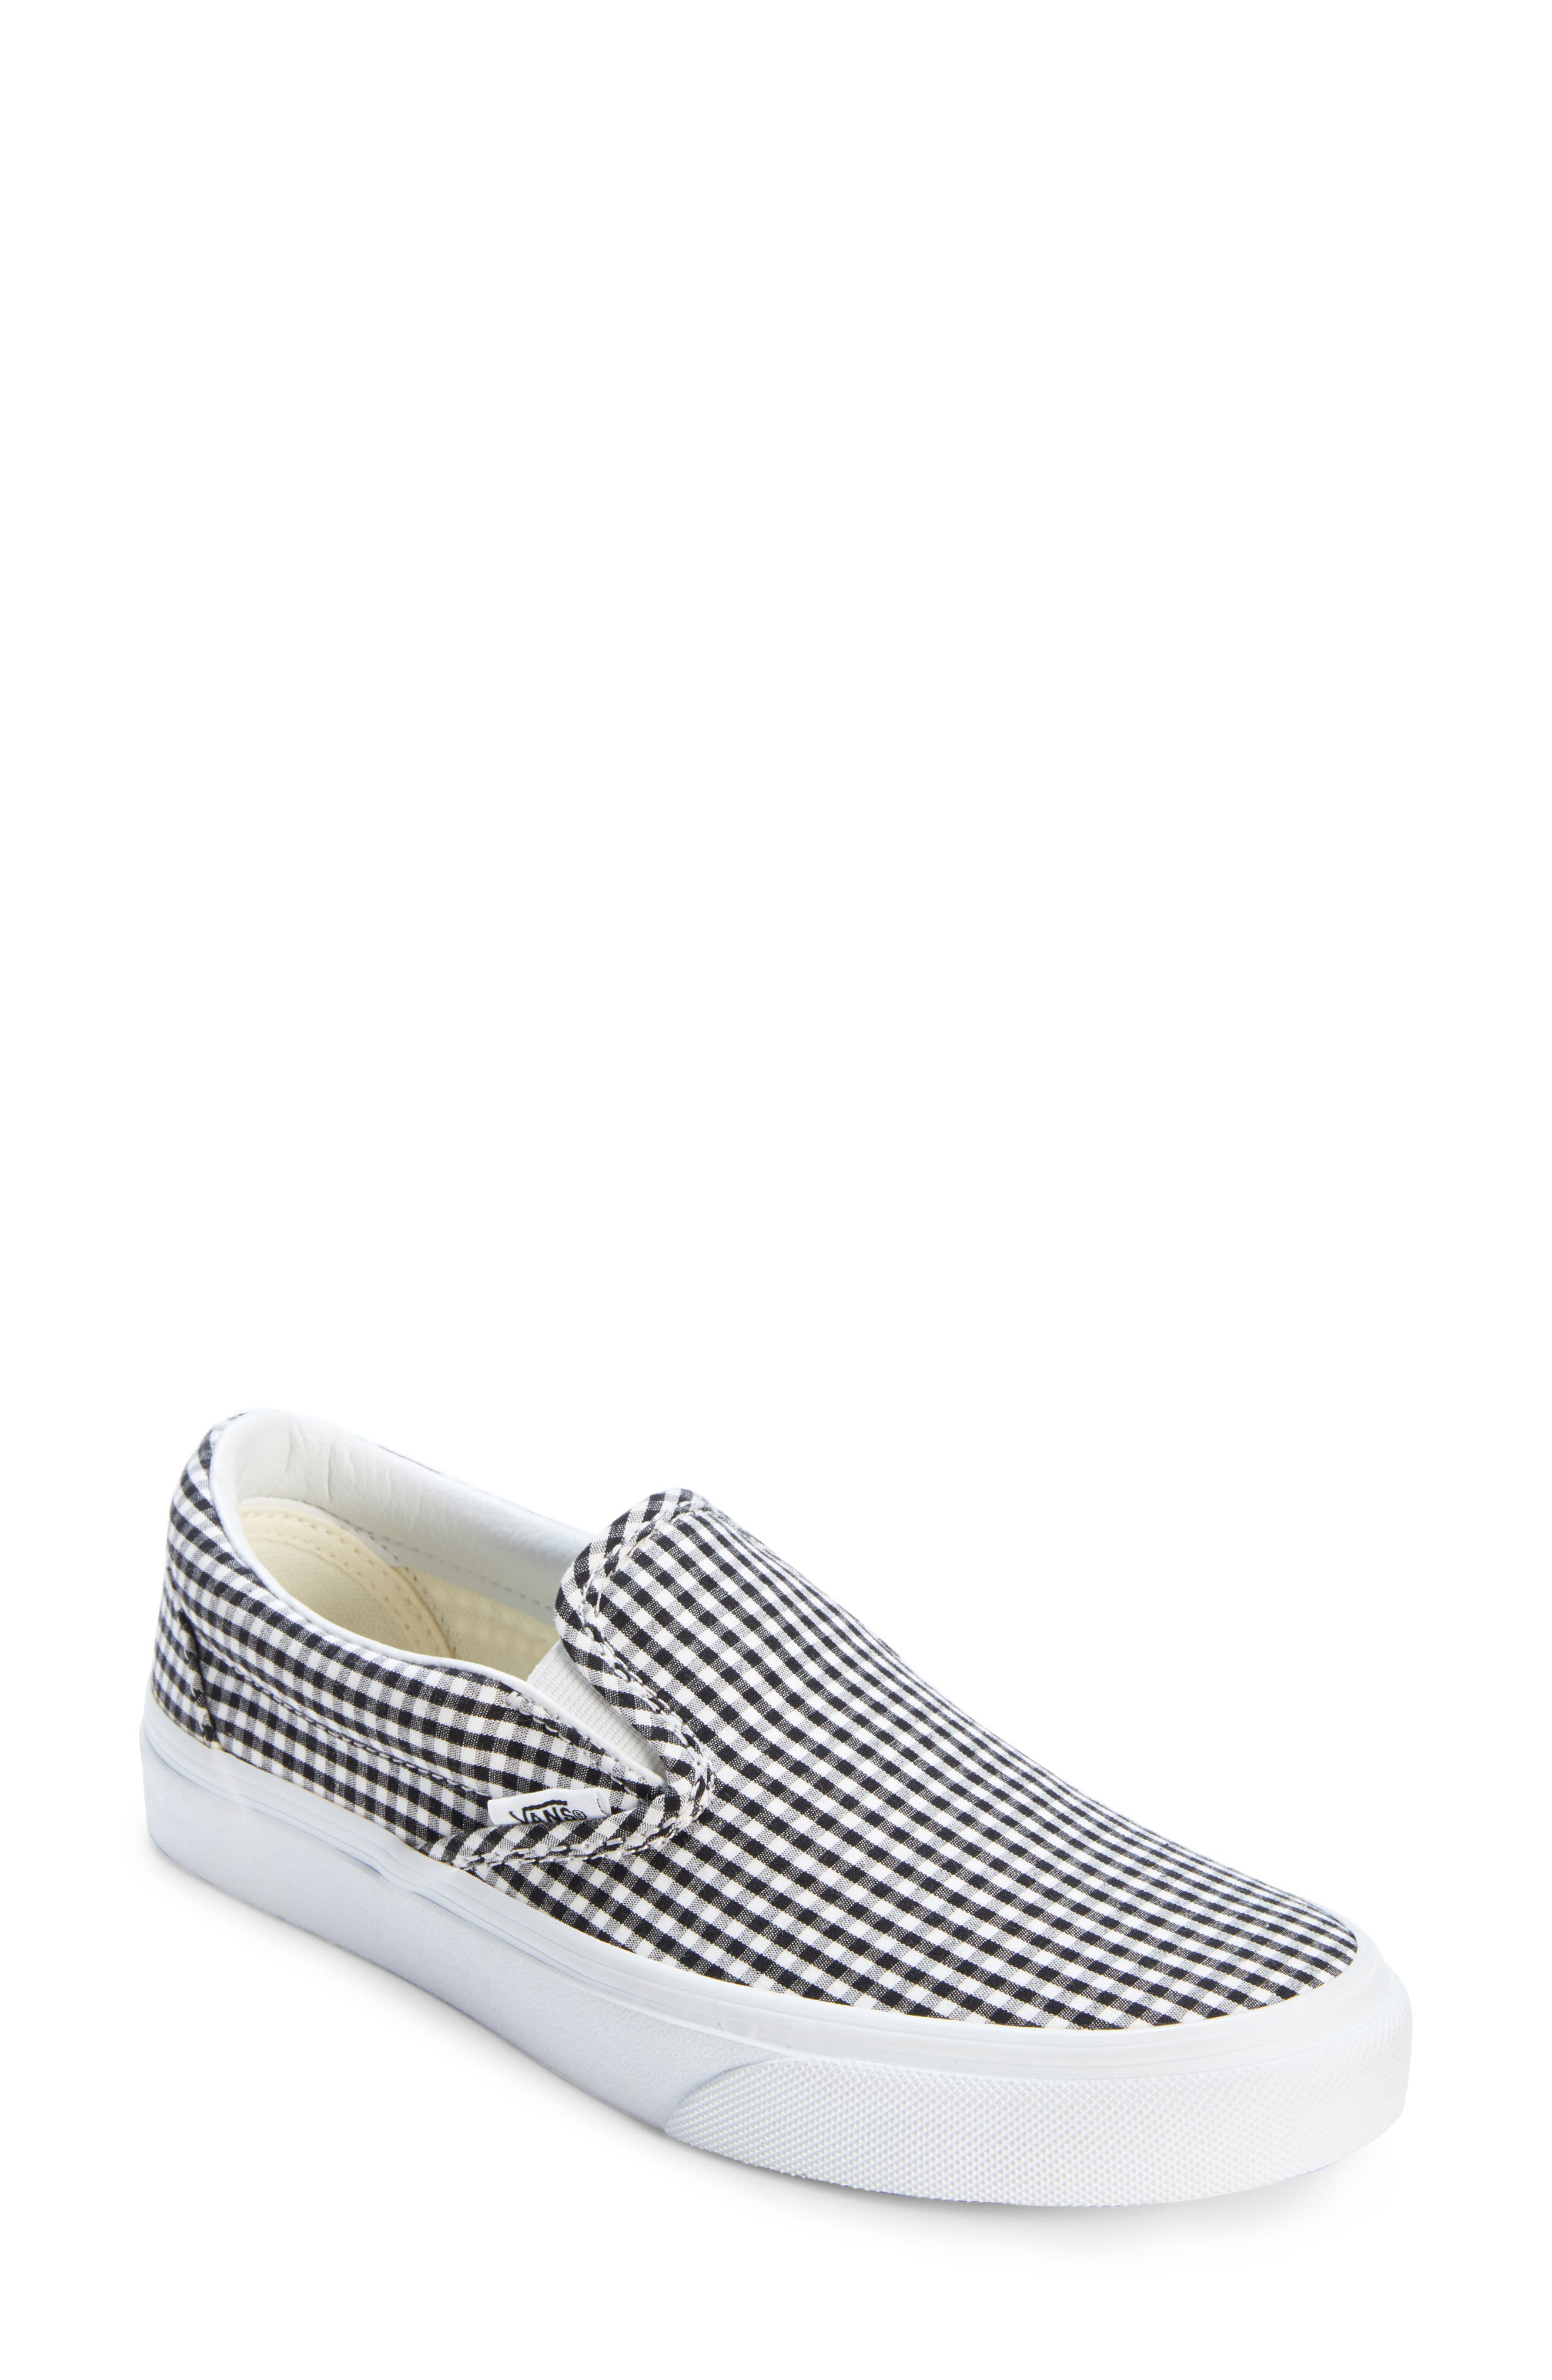 Classic Slip-On Sneaker,                         Main,                         color, Black/ True White Gingham